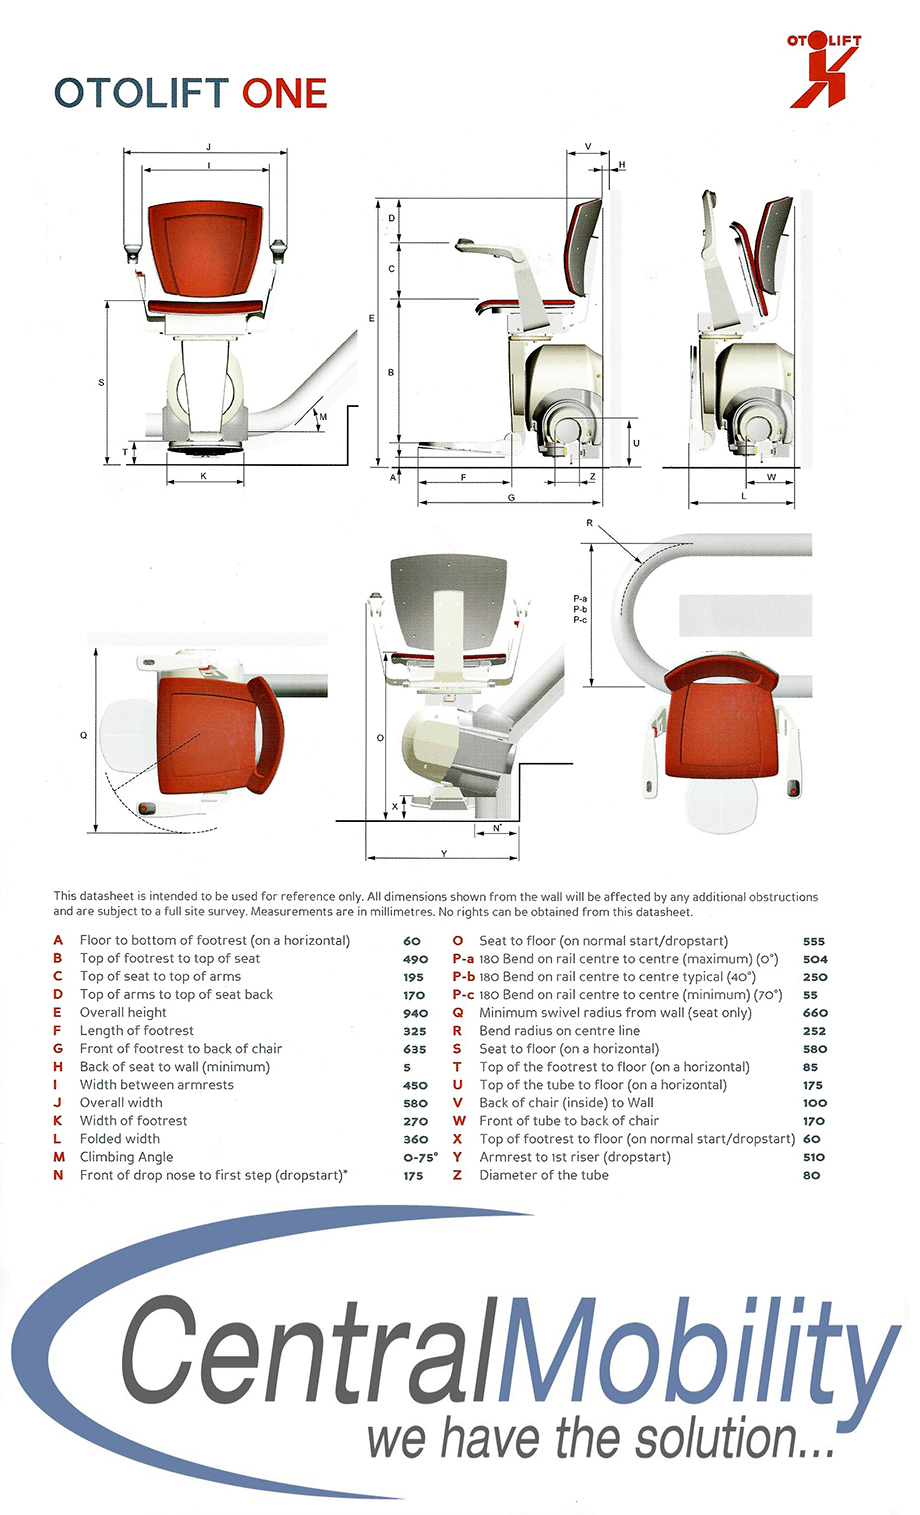 Otolift Dimensions Central Mobility